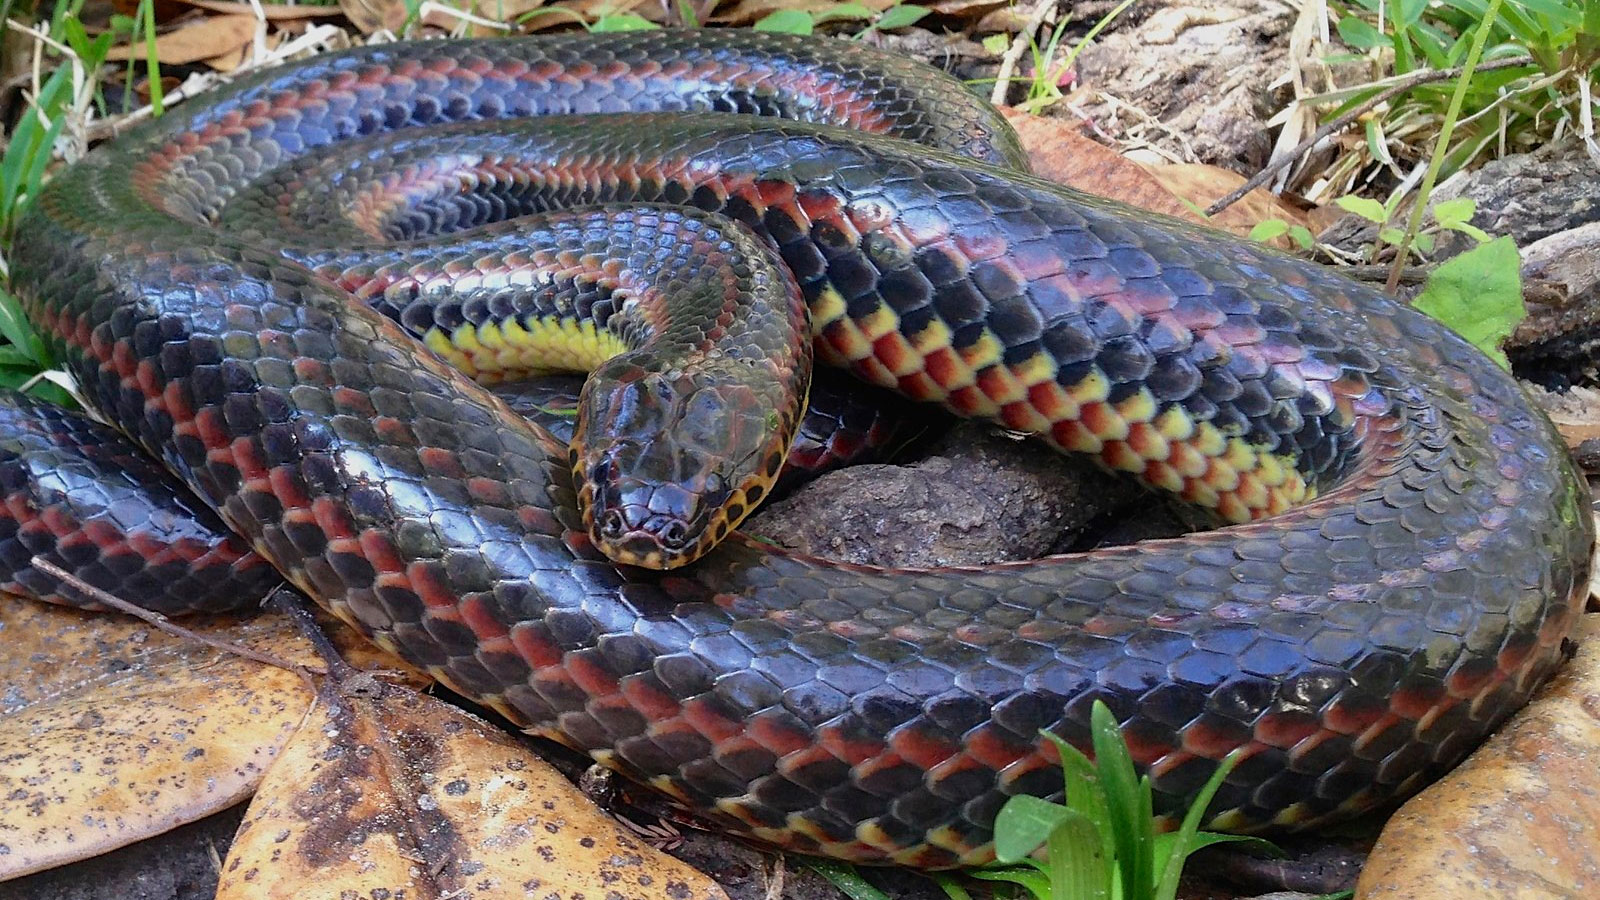 A rare rainbow snake was spotted in a Florida forest for the first time in 50 years. Don't worry, it's harmless